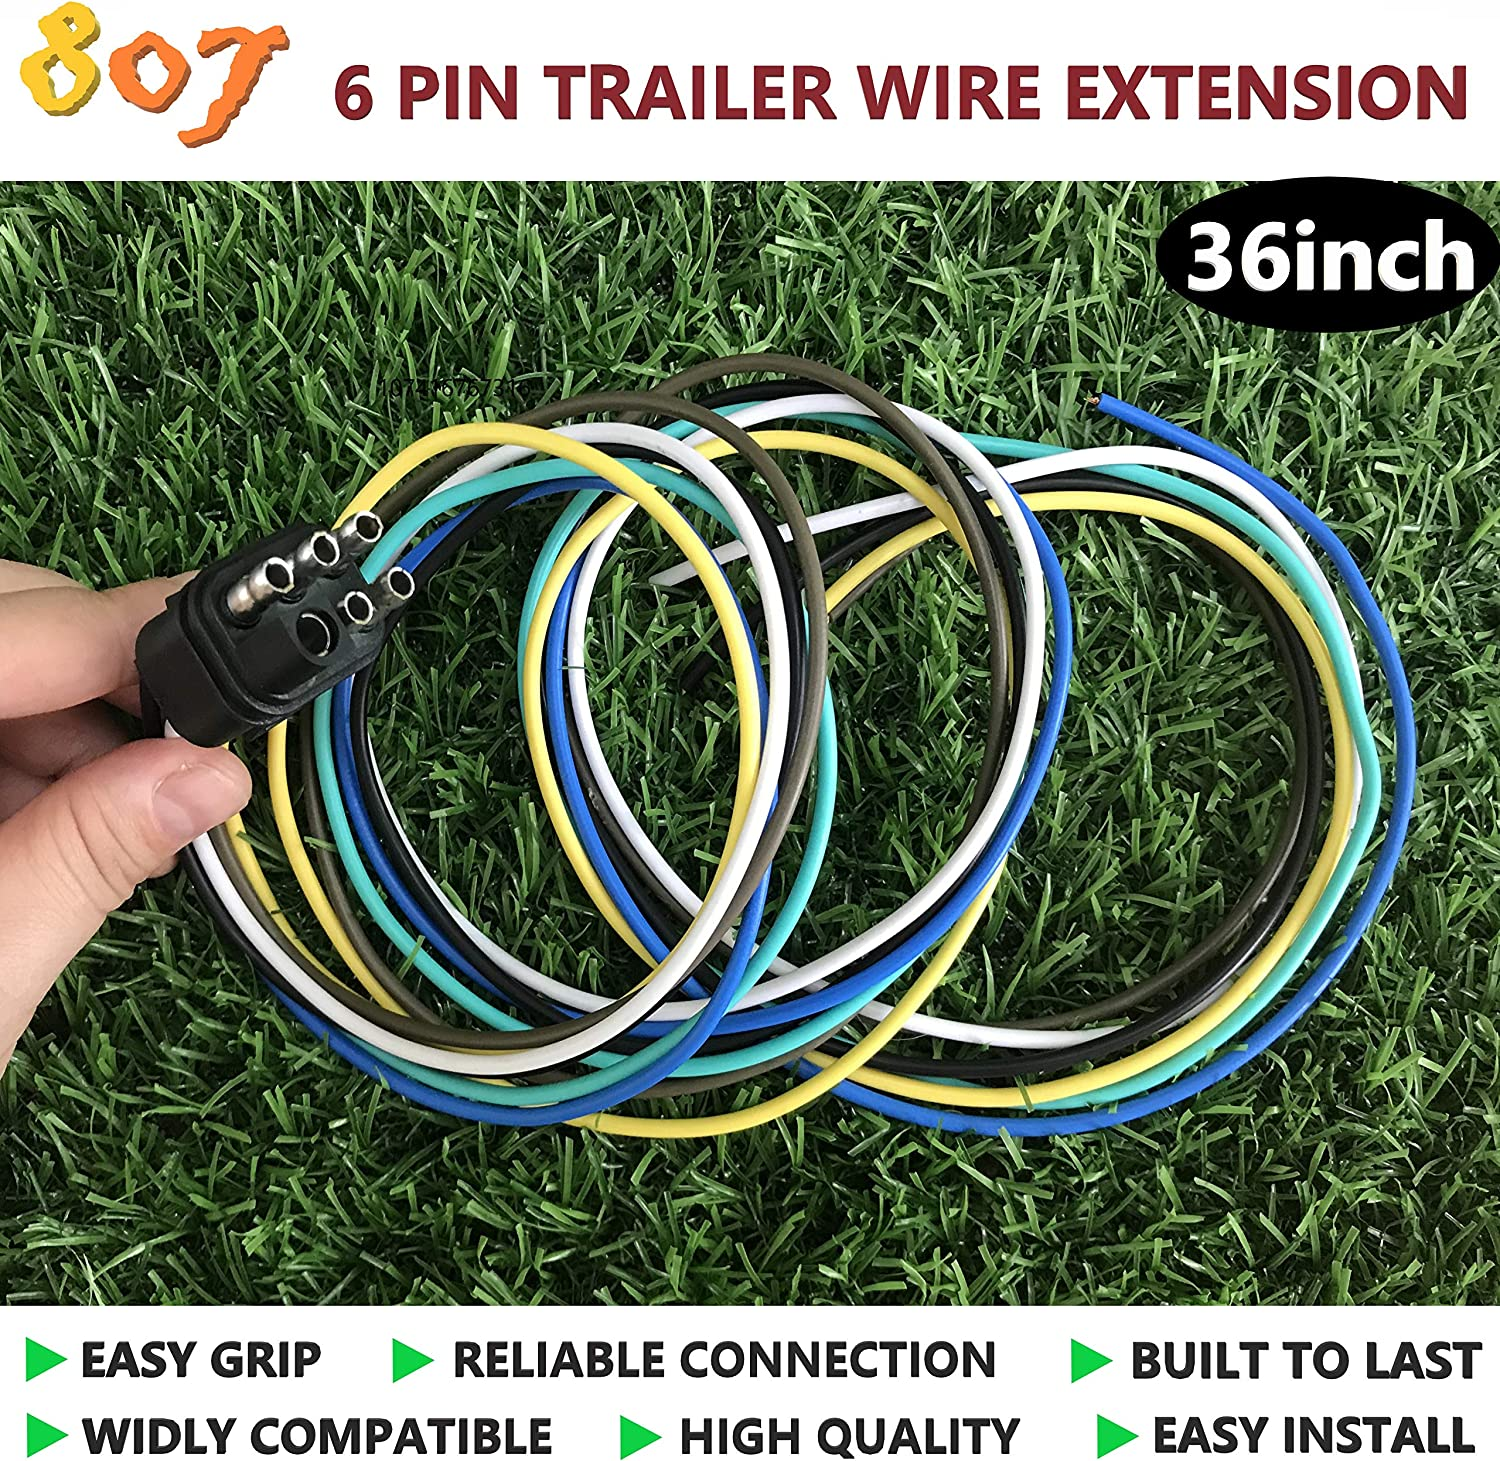 6 Way-Socket 807 Square 6-Way Trailer Wiring Harness Connectors,6 pin Square Trailer Wire Extension for LED Brake Tailgate Light Bars,Hitch Light Trailer Wiring Harness Extension Connector